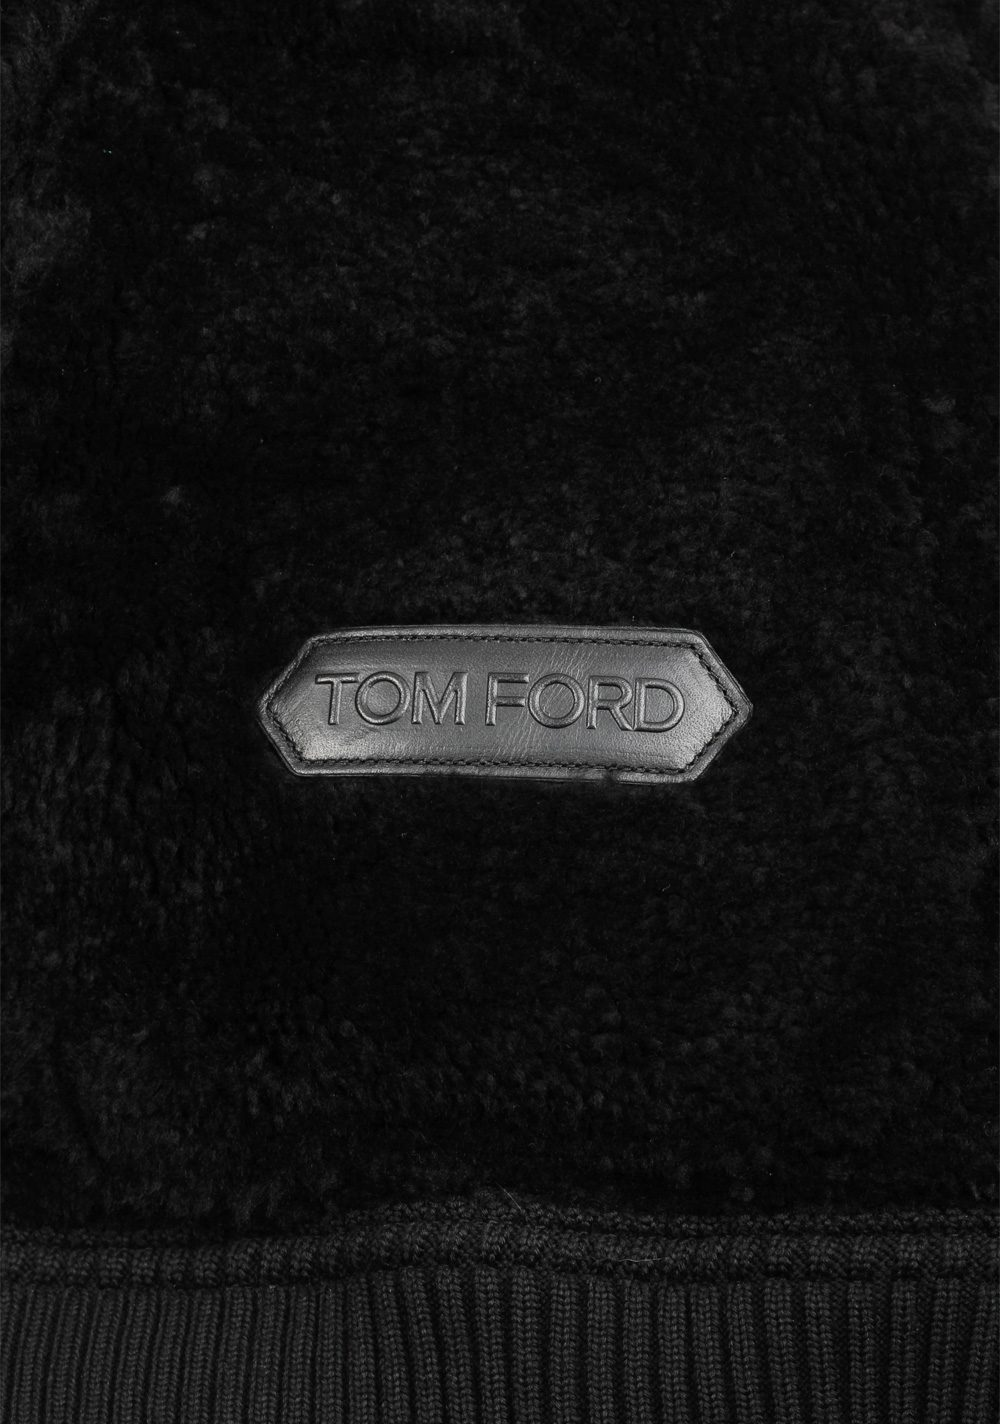 TOM FORD Black Suede Leather Shearling Bomber Jacket Coat Size 52 / 42R U.S. Outerwear | Costume Limité